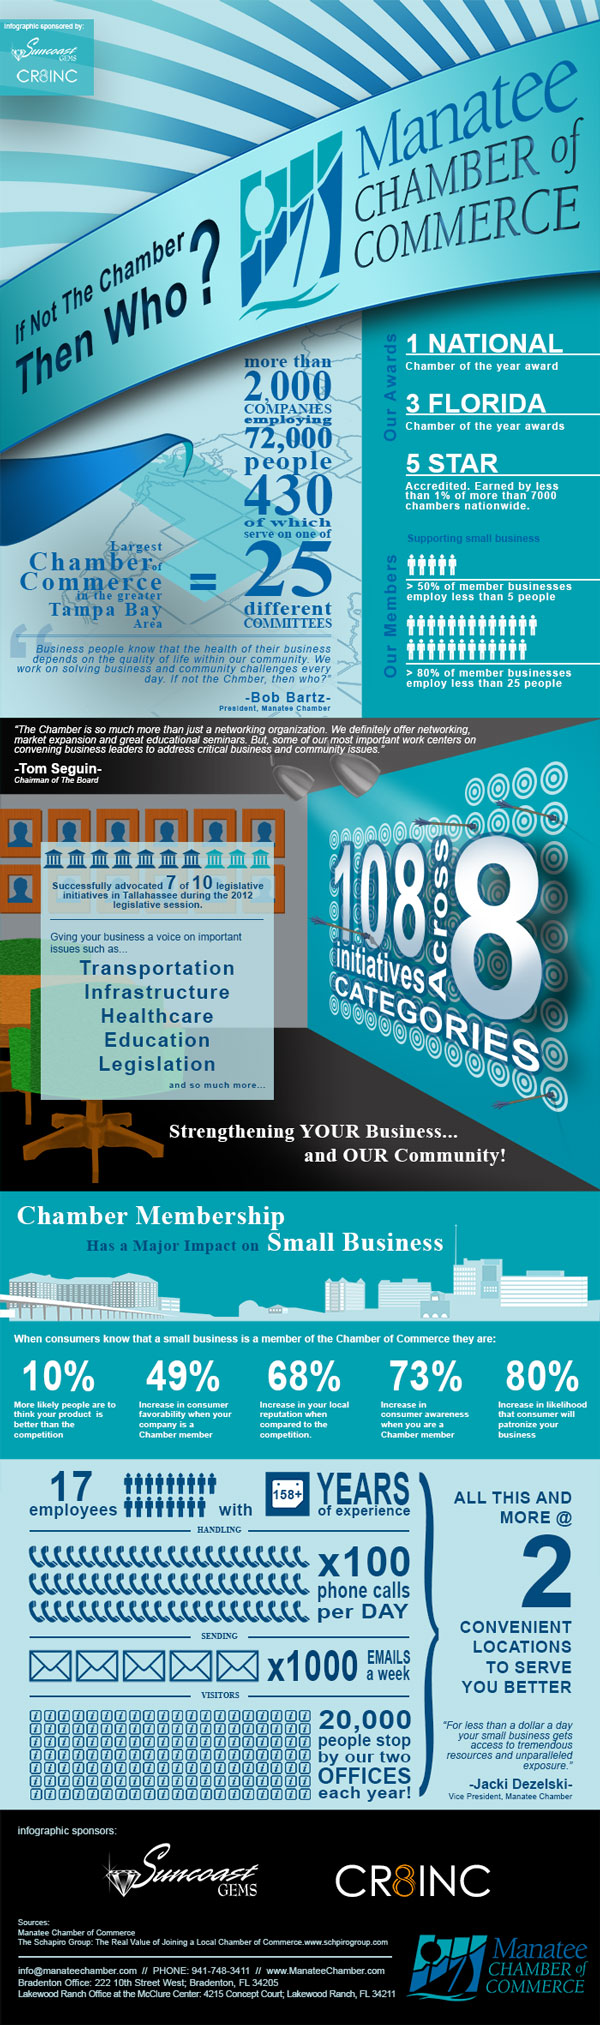 If Not The Chamber Then Who? Another infographic by